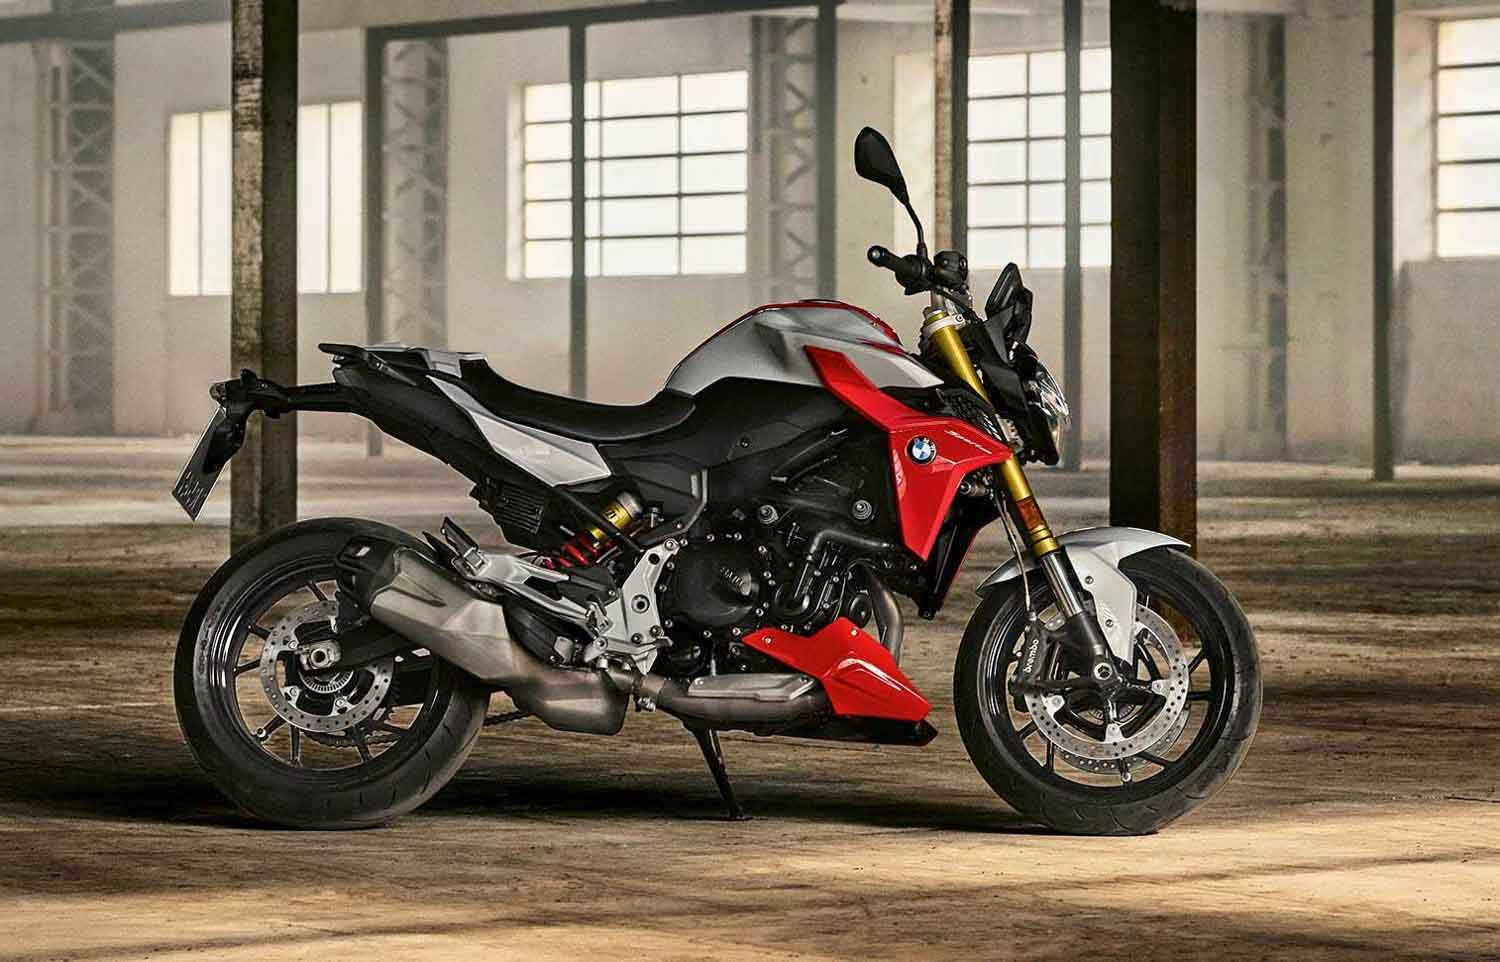 BMW F 900 R & F 900 XR Launched In India From Rs. 9.90